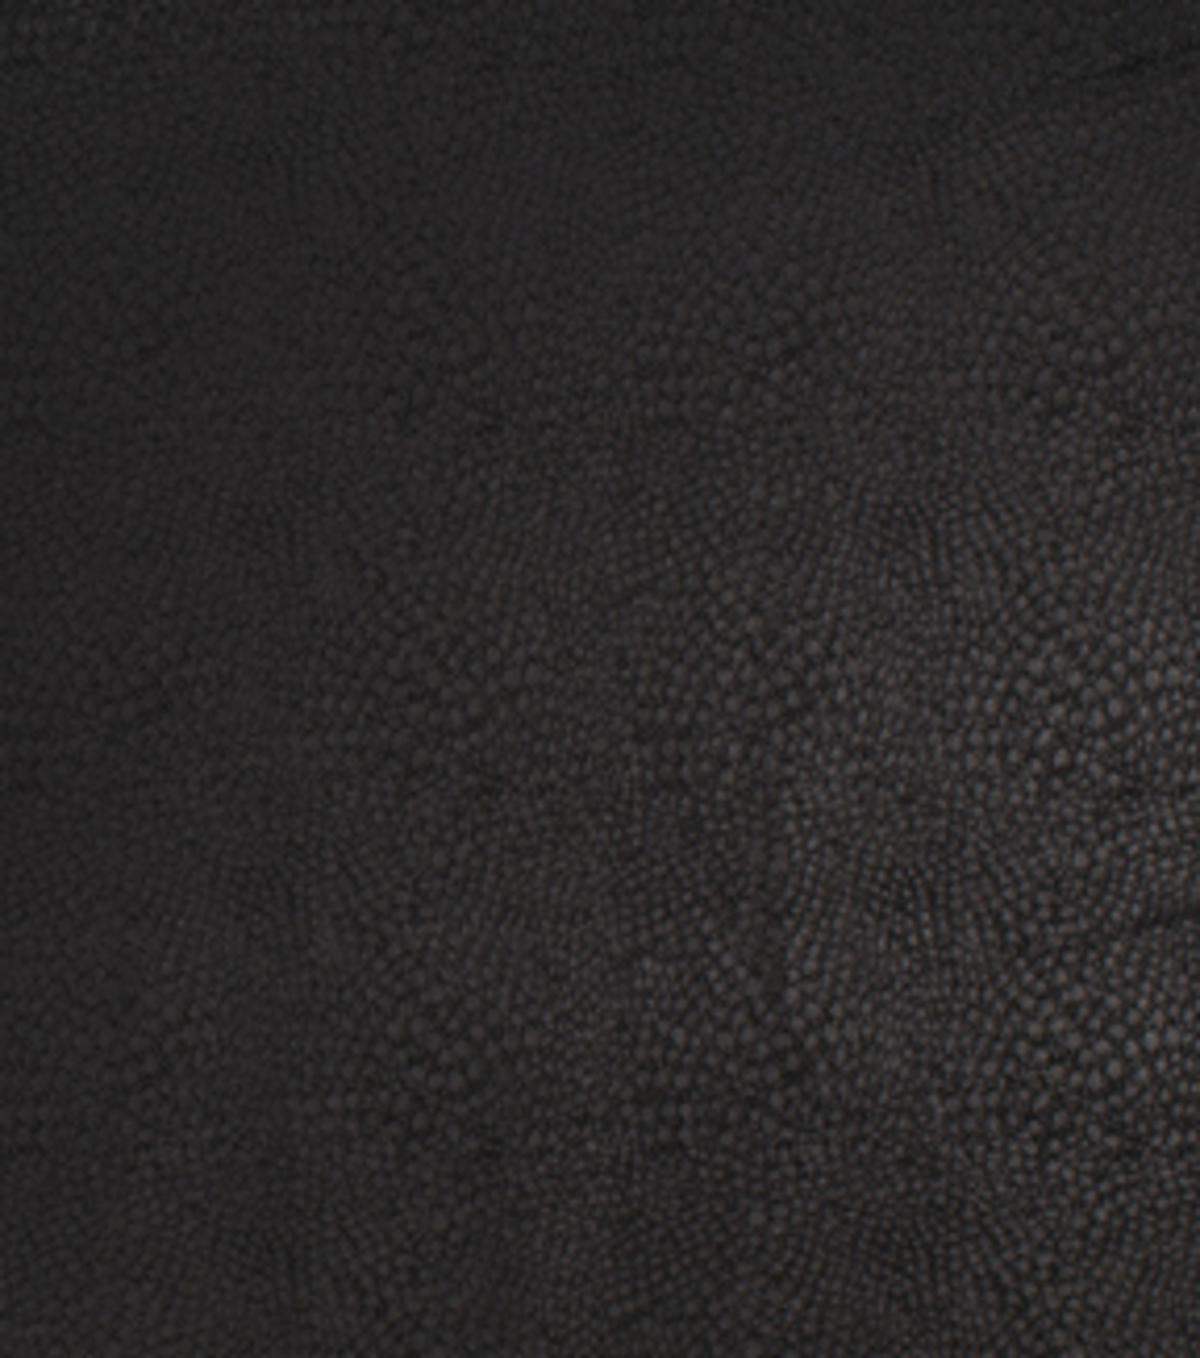 Home Decor 8\u0022x8\u0022 Fabric Swatch-Eaton Square Comfortable Jet Set